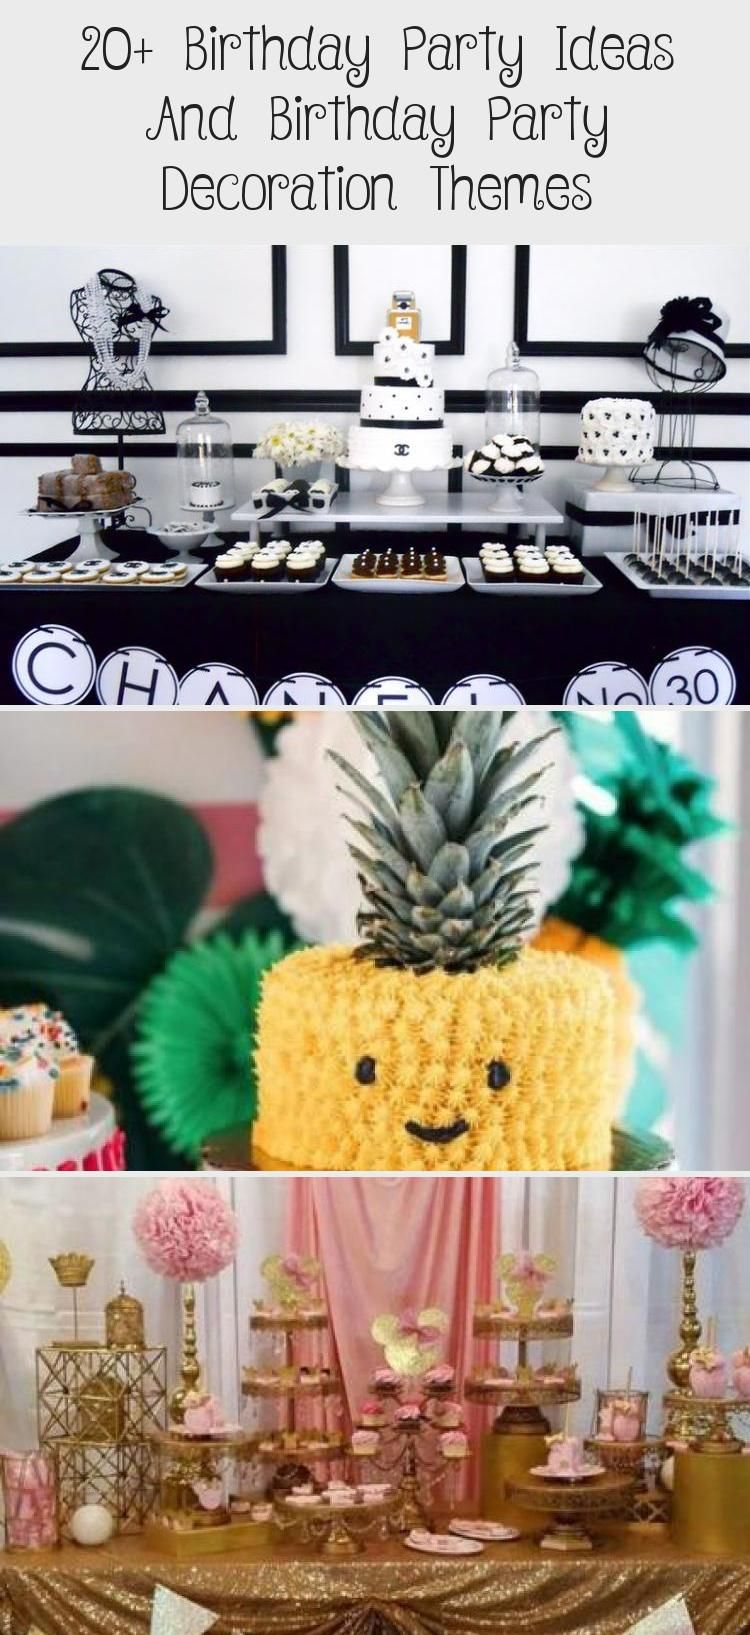 20+ Birthday Party Ideas and Birthday Party Decoration Themes — nettic #21stPa…